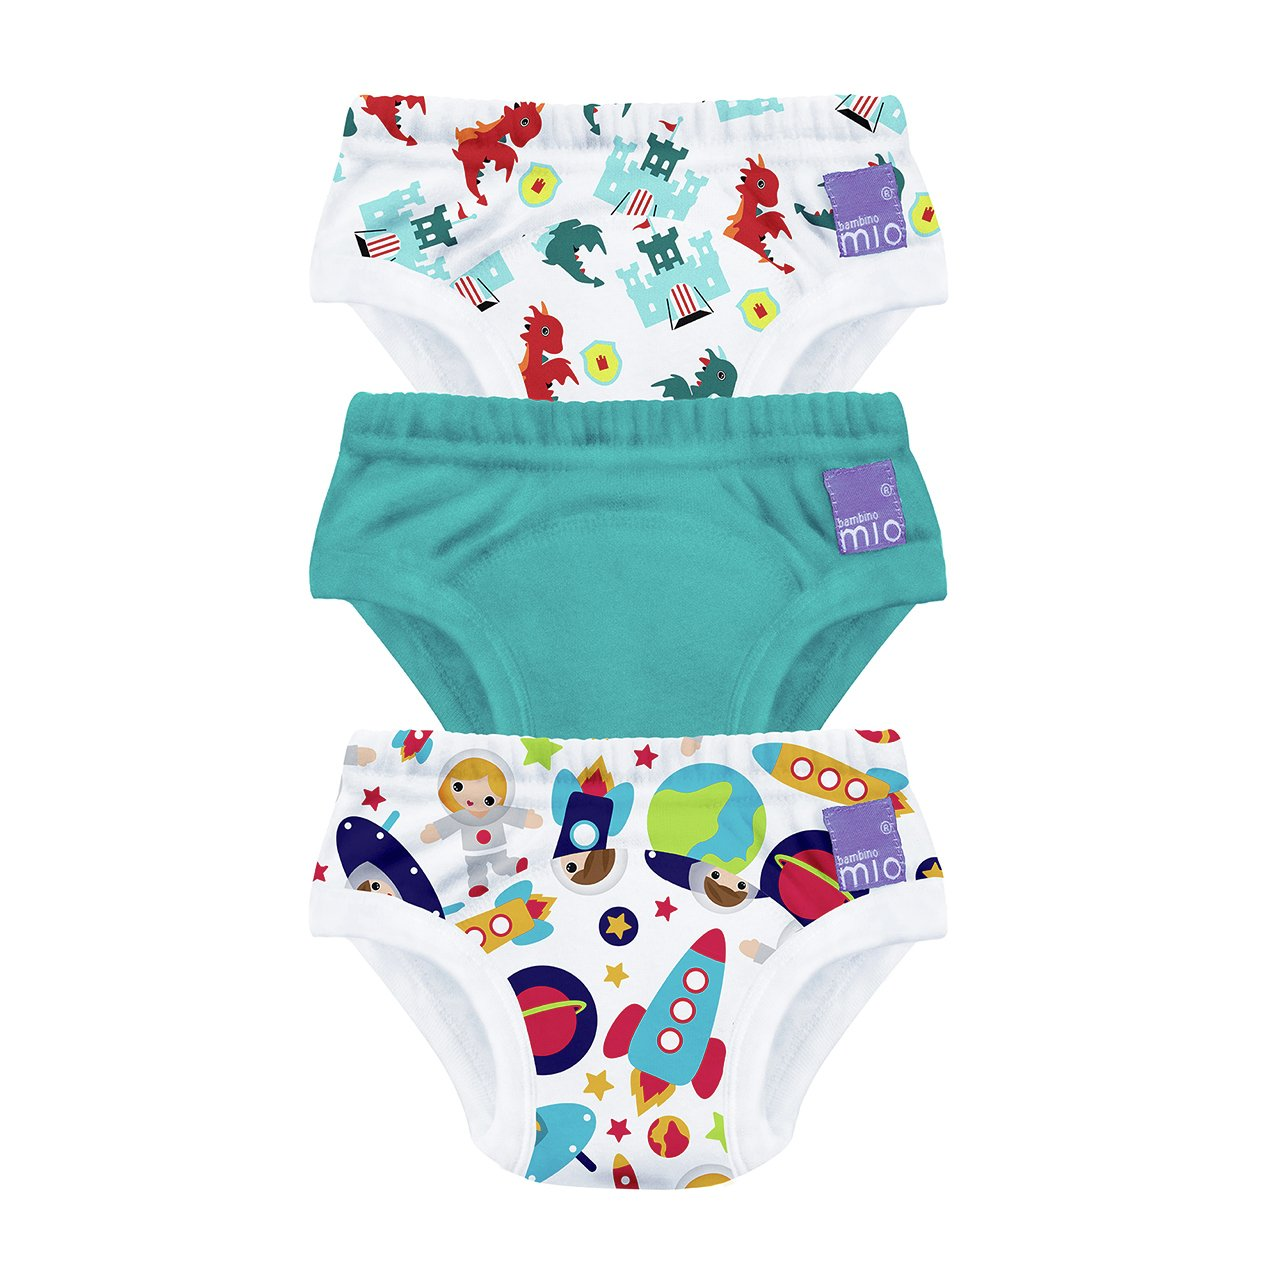 Bambino Mio Training Pants 2-3yrs - 3 Pack